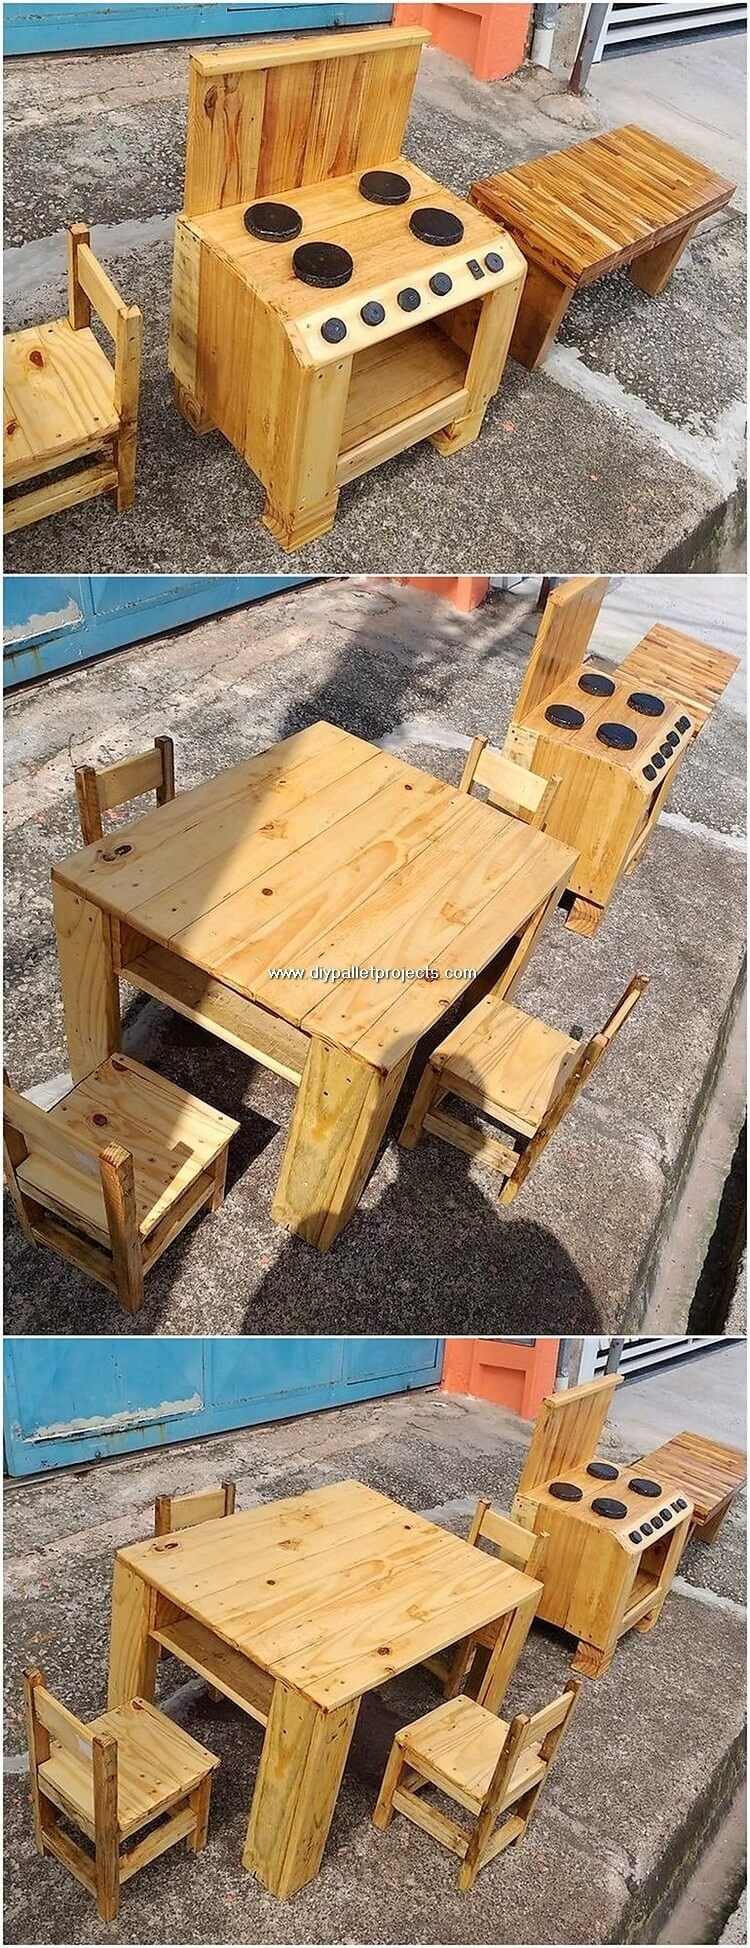 Pallet Kitchen and Furniture for Kids